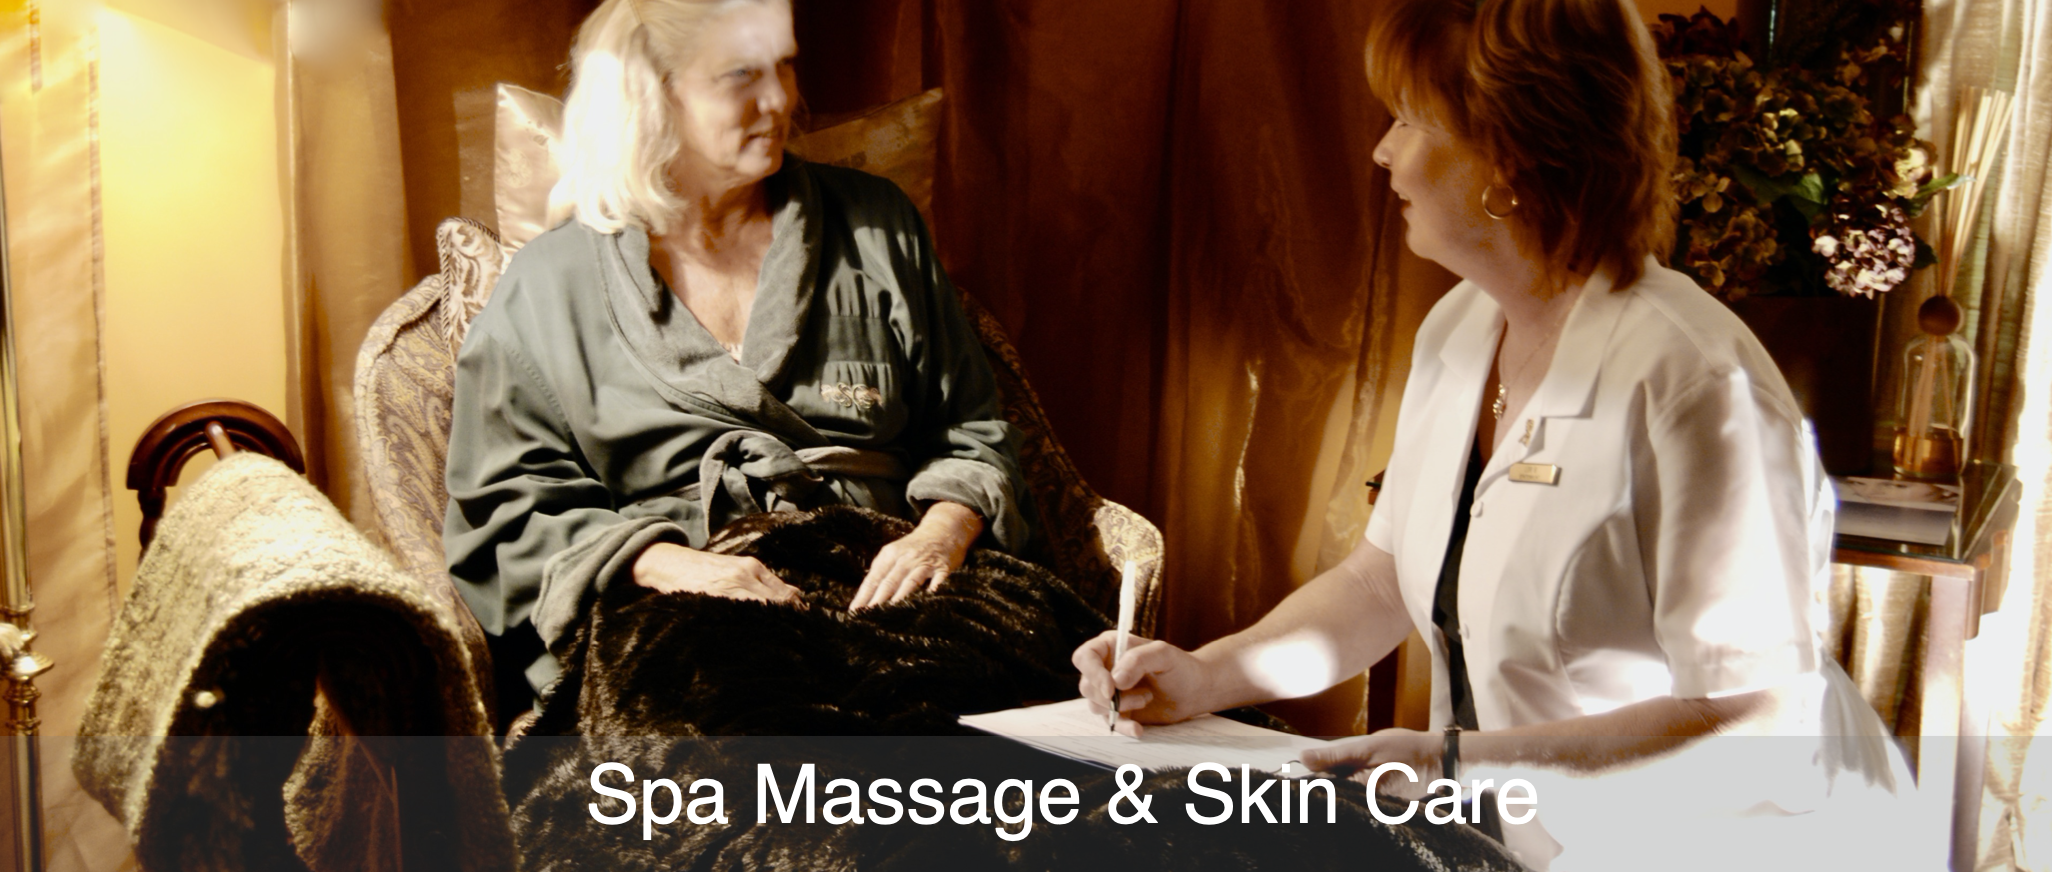 greet the day oncology spa massage and skin care